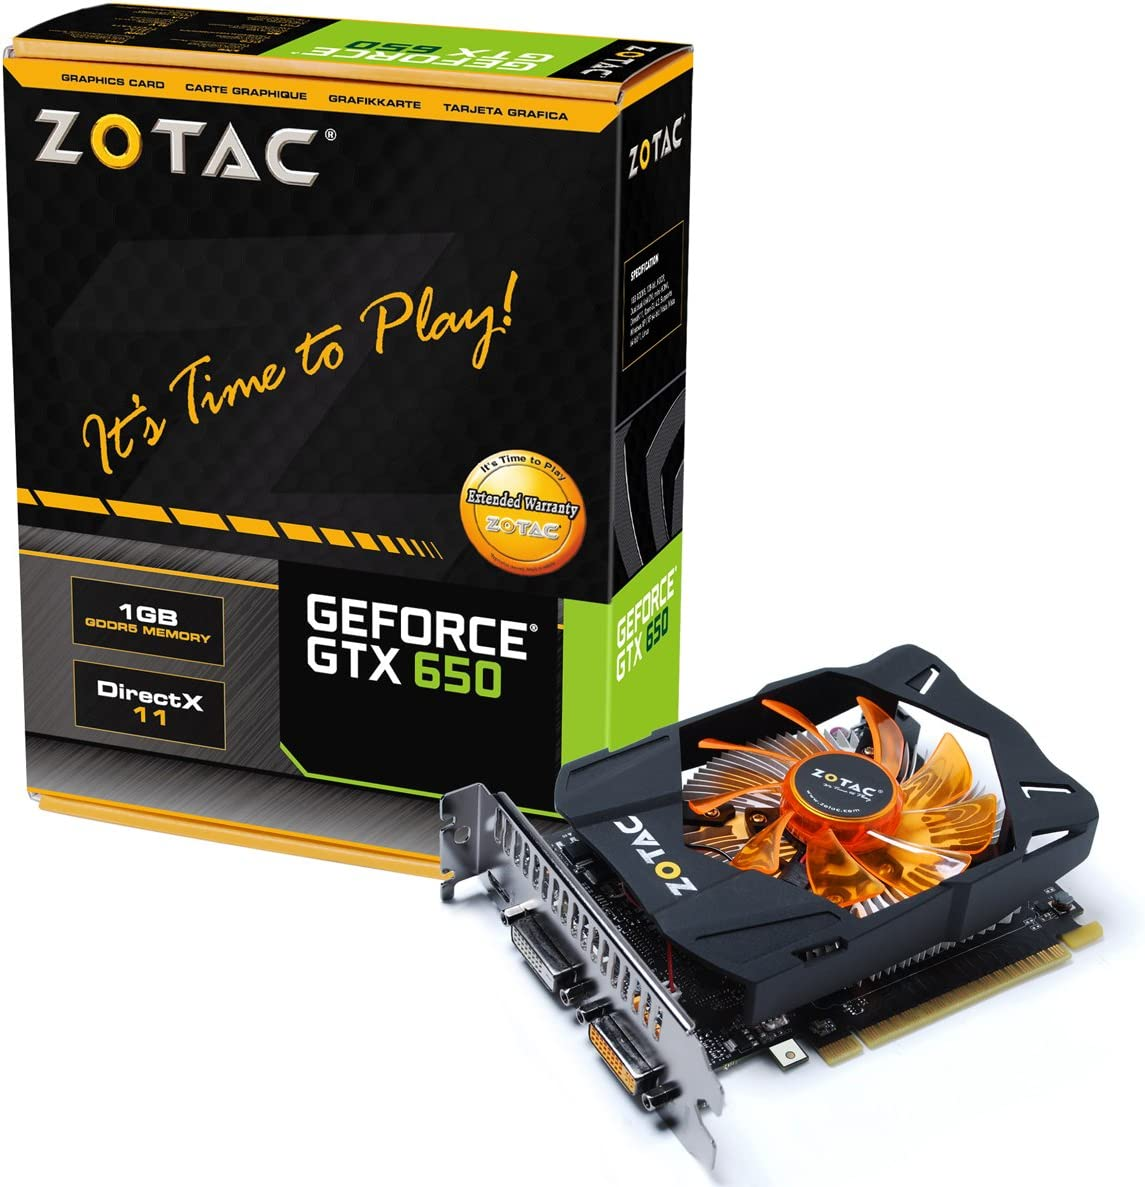 Zotac Geforce GTX 650 1GB GDDR5 ZT-61004-10M Nvidia Video Graphics Card GPU